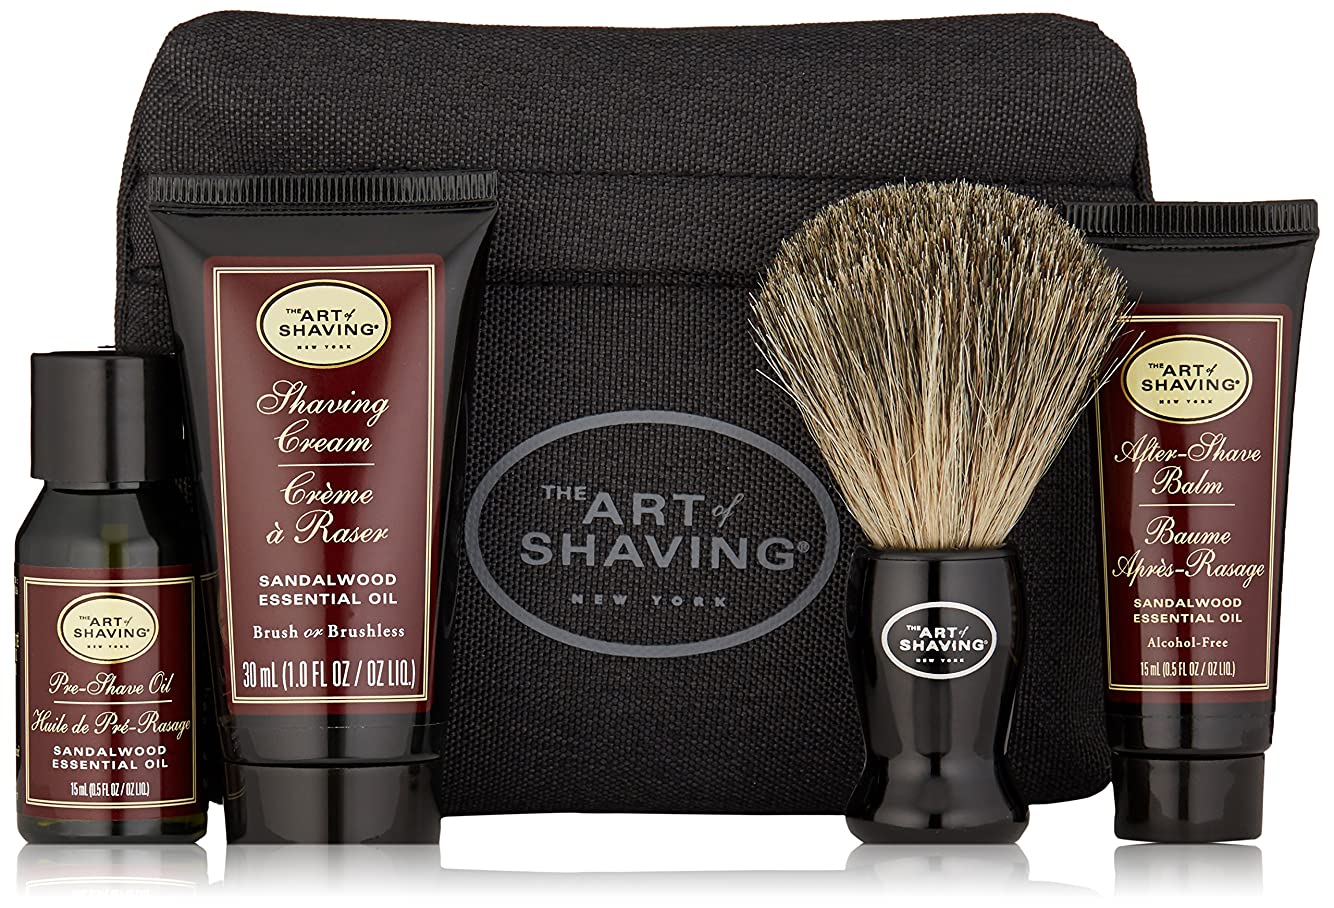 カレンダー論文テスピアンアートオブシェービング Starter Kit - Sandalwood: Pre Shave Oil + Shaving Cream + After Shave Balm + Brush + Bag 4pcs + 1Bag並行輸入品